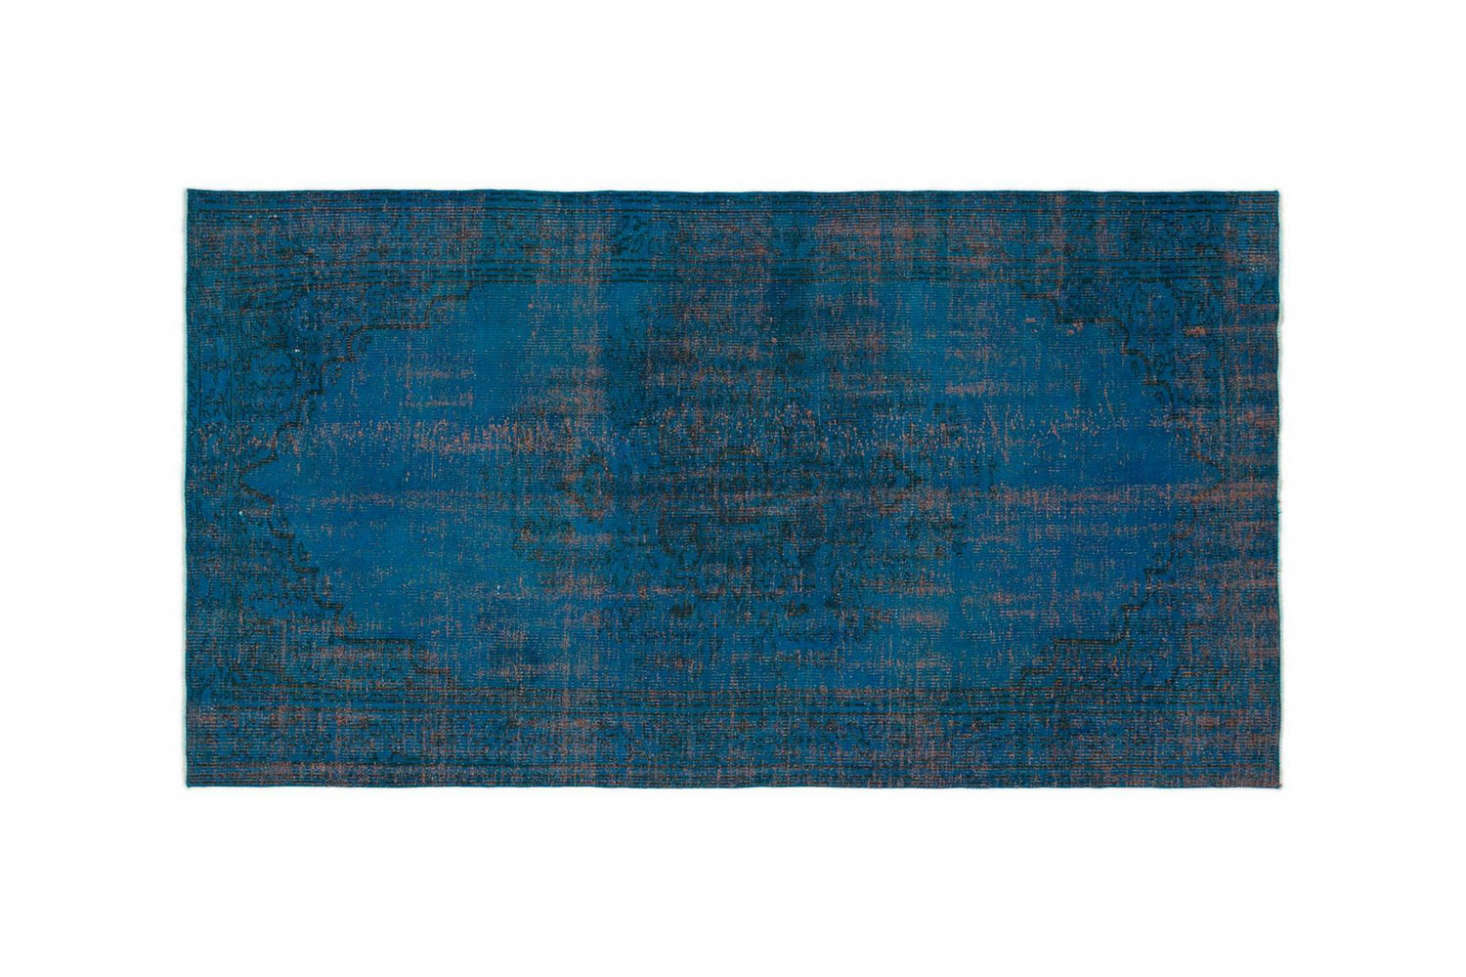 The Turquoise Overdyed Turkish Vintage Rug is $4 at Kilim.com.